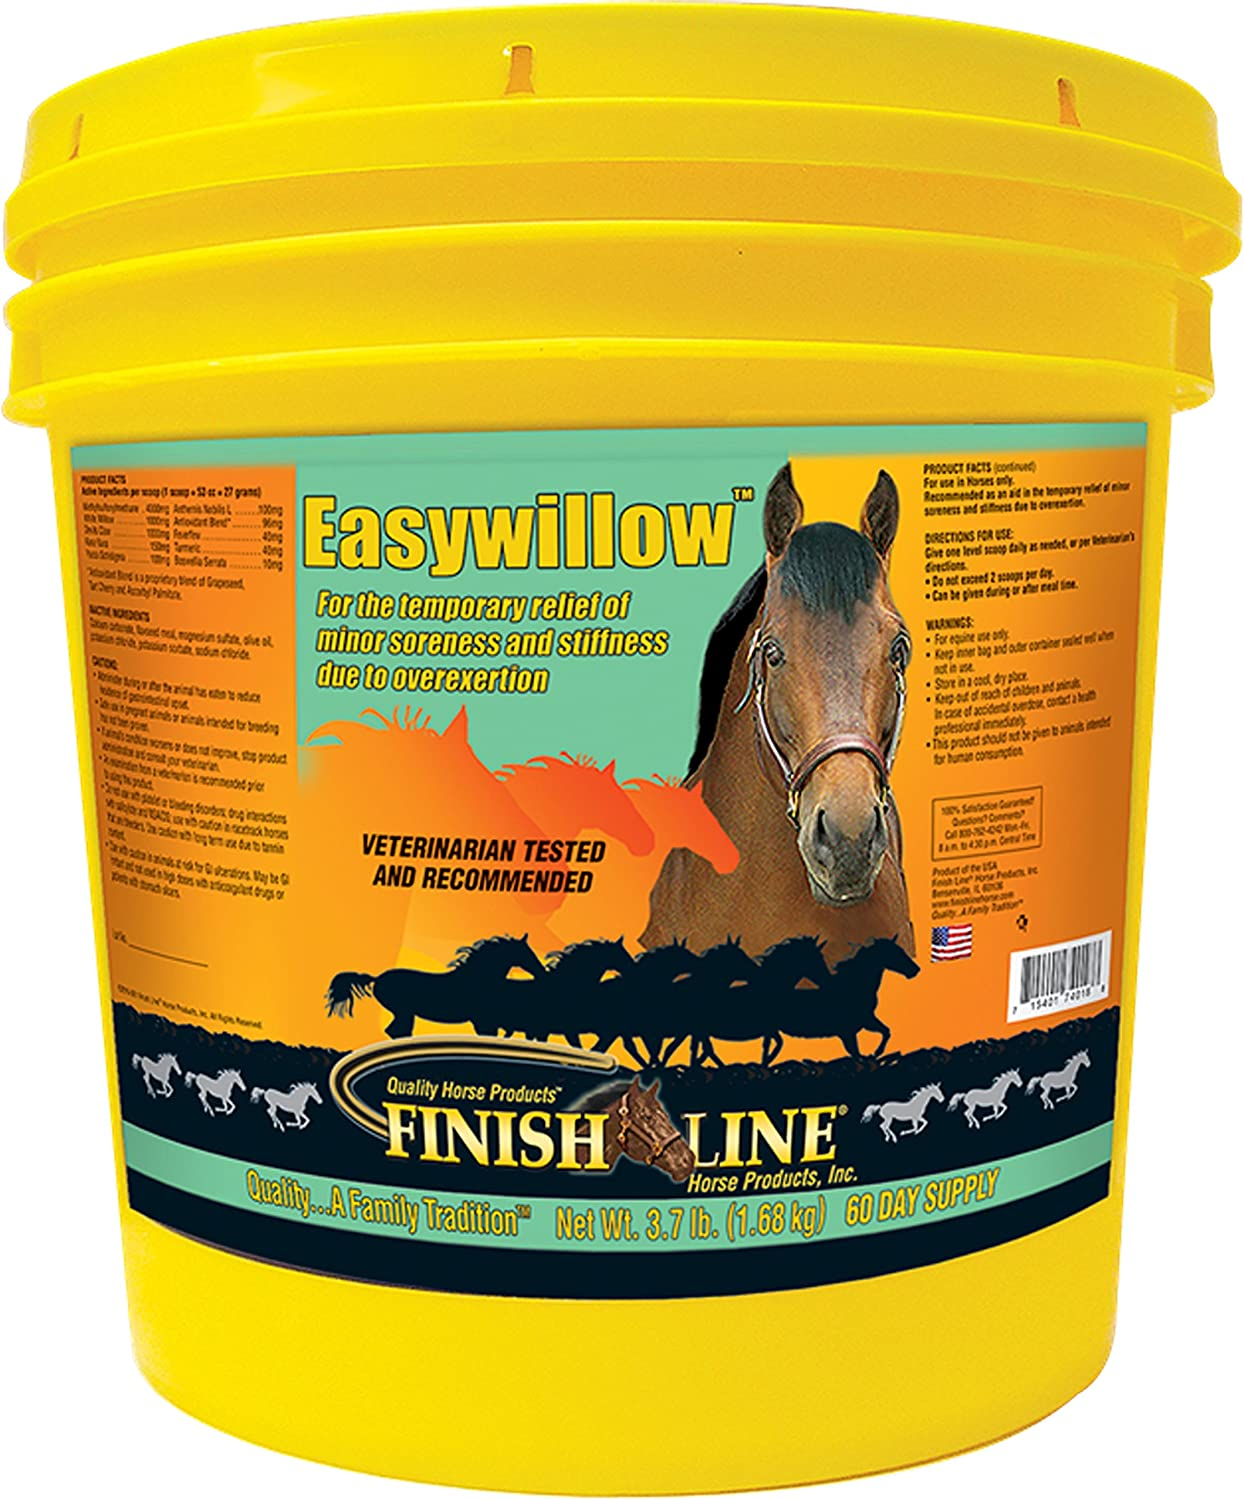 Finish Line Easywillow Pain lbs 3.7 Management Sales 2021 autumn and winter new